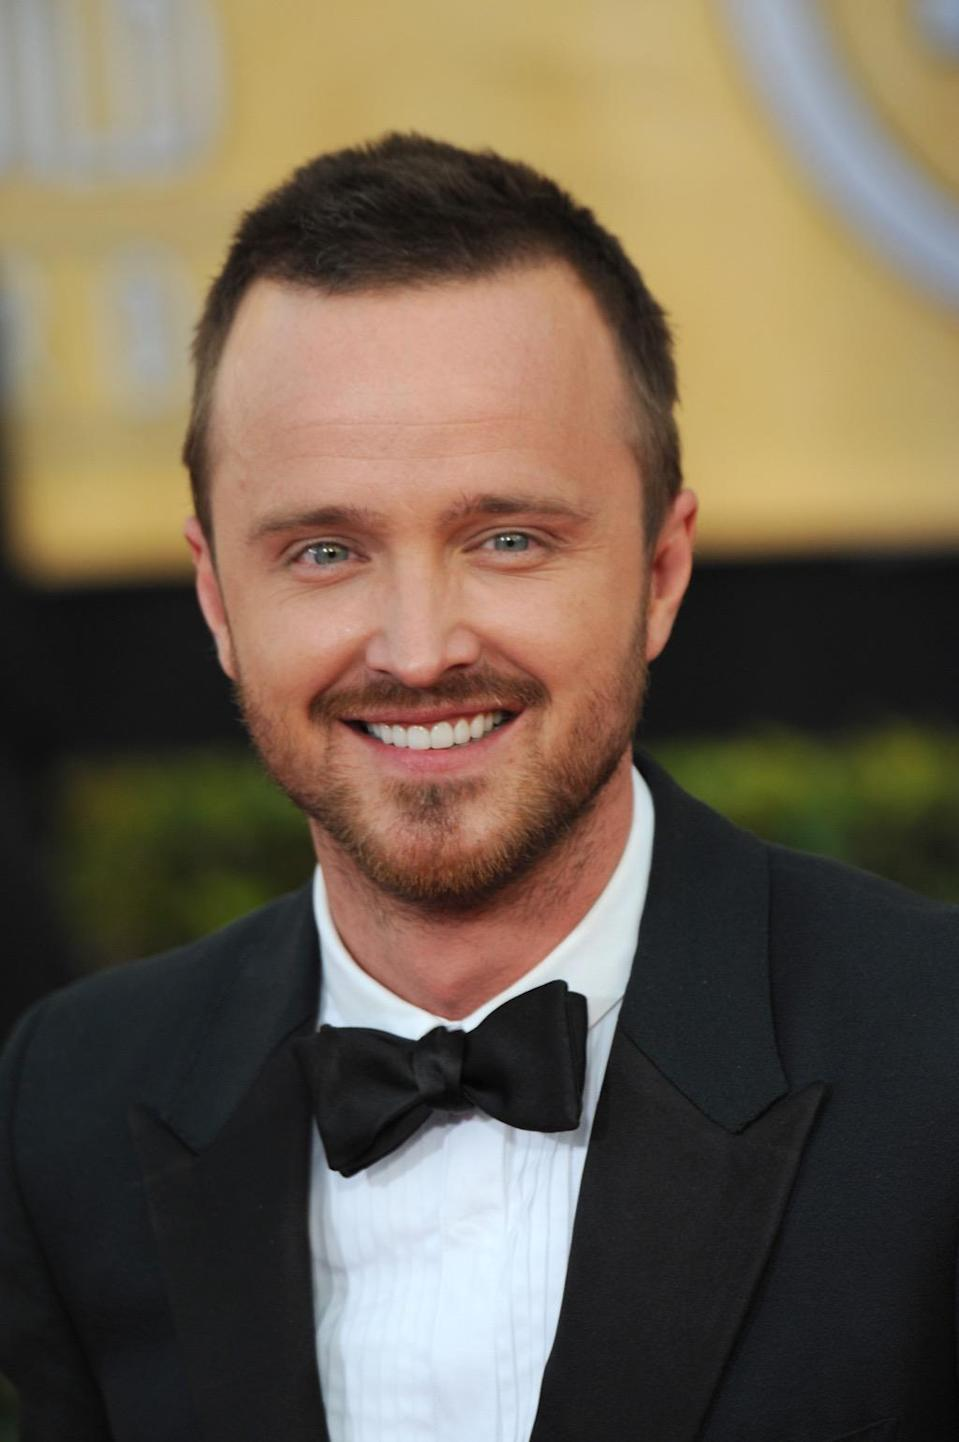 "<strong>Aaron Paul</strong>, who's known for playing Jesse Pinkman on <em>Breaking Bad</em>, was raised in Emmett, Idaho. In his hometown, Paul discovered his love of acting by <a href=""https://www.theguardian.com/global/2019/oct/06/aaron-paul-breaking-bad-changed-my-life-tv-interview-film-netflix"" rel=""nofollow noopener"" target=""_blank"" data-ylk=""slk:performing in church plays"" class=""link rapid-noclick-resp"">performing in church plays</a>. After graduating from <a href=""https://www.ktvb.com/article/features/idaho-raised-star-aaron-paul-makes-rounds-across-boise/53427617"" rel=""nofollow noopener"" target=""_blank"" data-ylk=""slk:Centennial High School"" class=""link rapid-noclick-resp"">Centennial High School</a> in Boise, he and his mother moved to Los Angeles to chase his dreams. But Paul still has tons of love for his home state, which he uses to get away from Hollywood. ""I love that Idaho is this sort of kept secret,"" he told <a href=""https://www.mensjournal.com/entertainment/aaron-paul-s-private-idaho-20160311/"" rel=""nofollow noopener"" target=""_blank"" data-ylk=""slk:Men's Journal"" class=""link rapid-noclick-resp""><em>Men's Journal</em></a>. ""Everyone visualizes Idaho as this dirt field filled with potatoes … but that's not accurate at all. It's just nothing but mountains and rivers and lakes."""